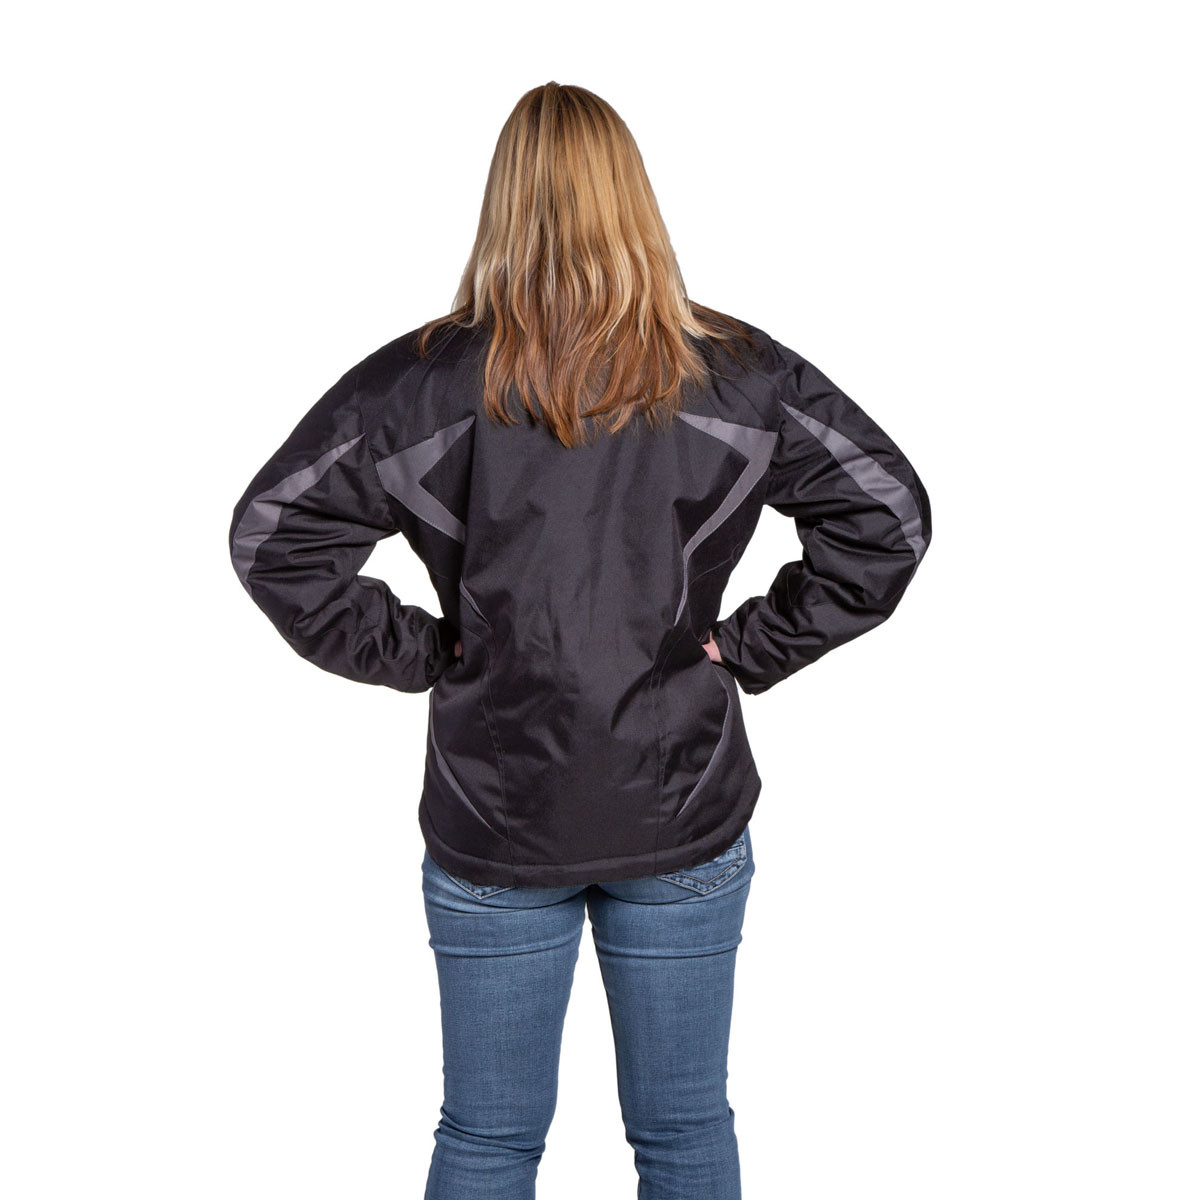 Womens Snowmobile Suits >> Mossi 990 309 Women S F1 Snowmobile Jacket Snowmobile